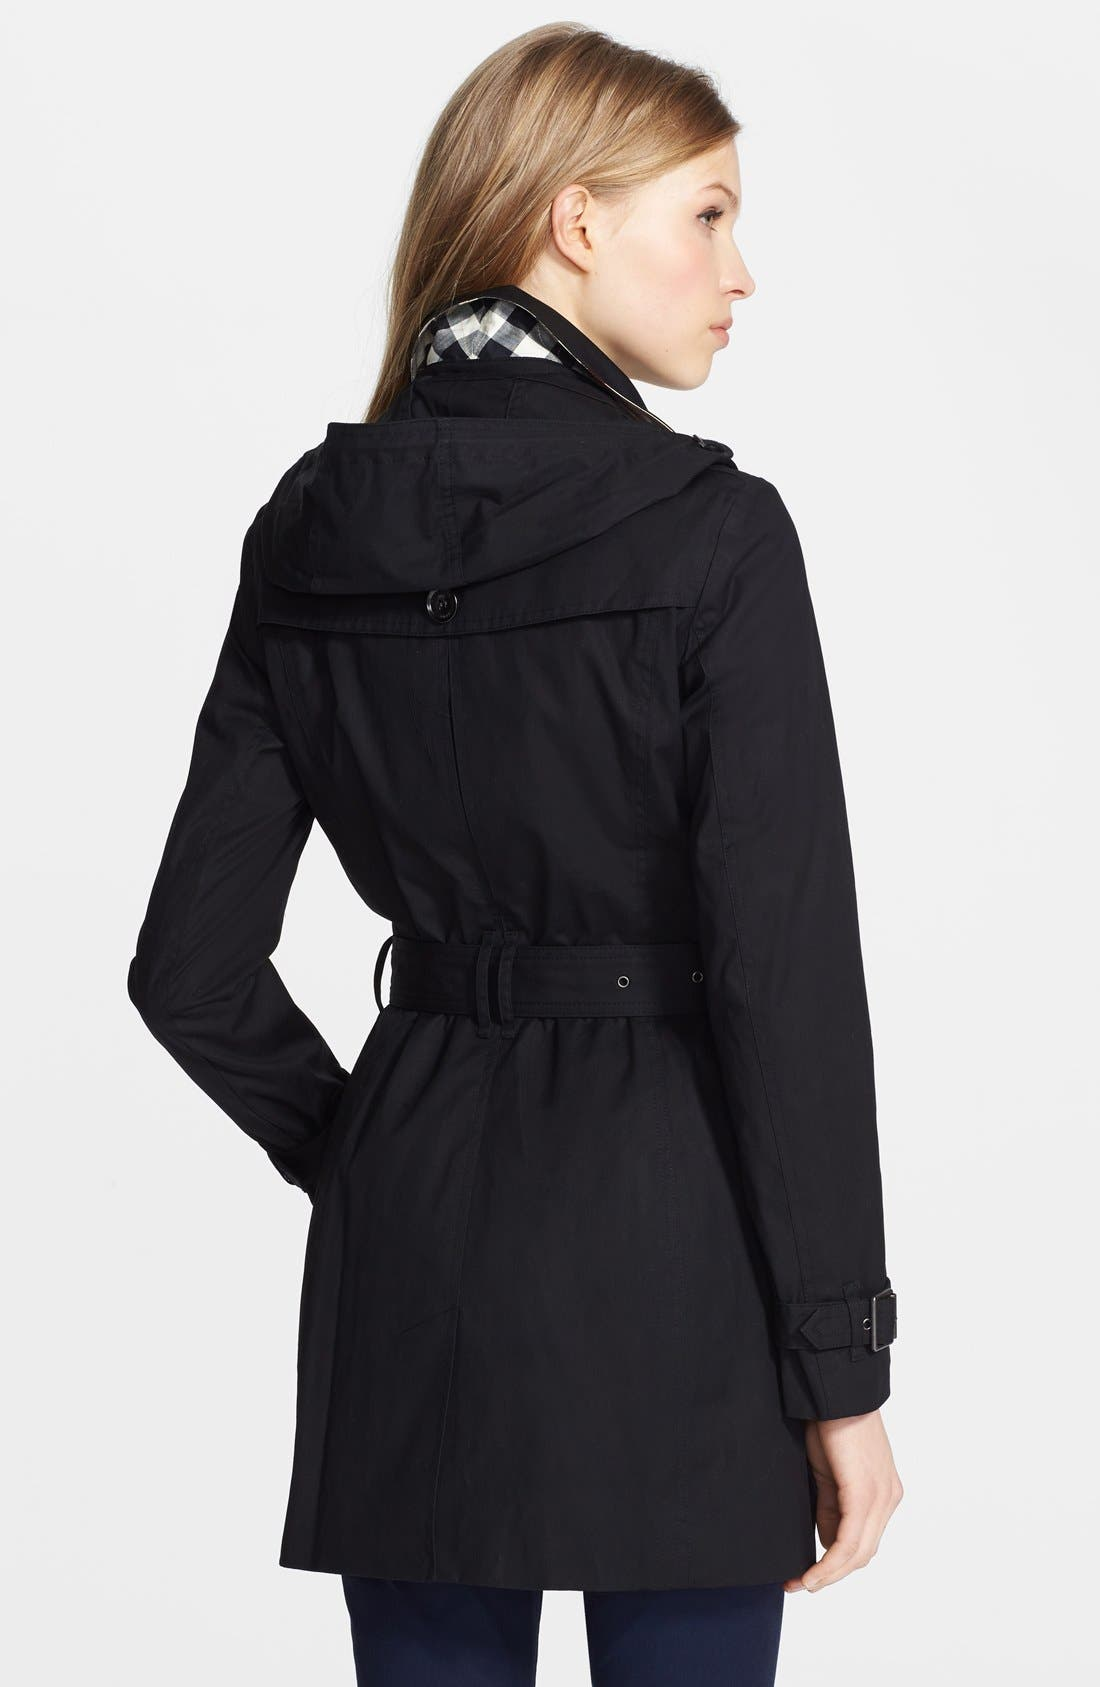 'Reymoore' Trench Coat with Detachable Hood,                             Alternate thumbnail 4, color,                             001